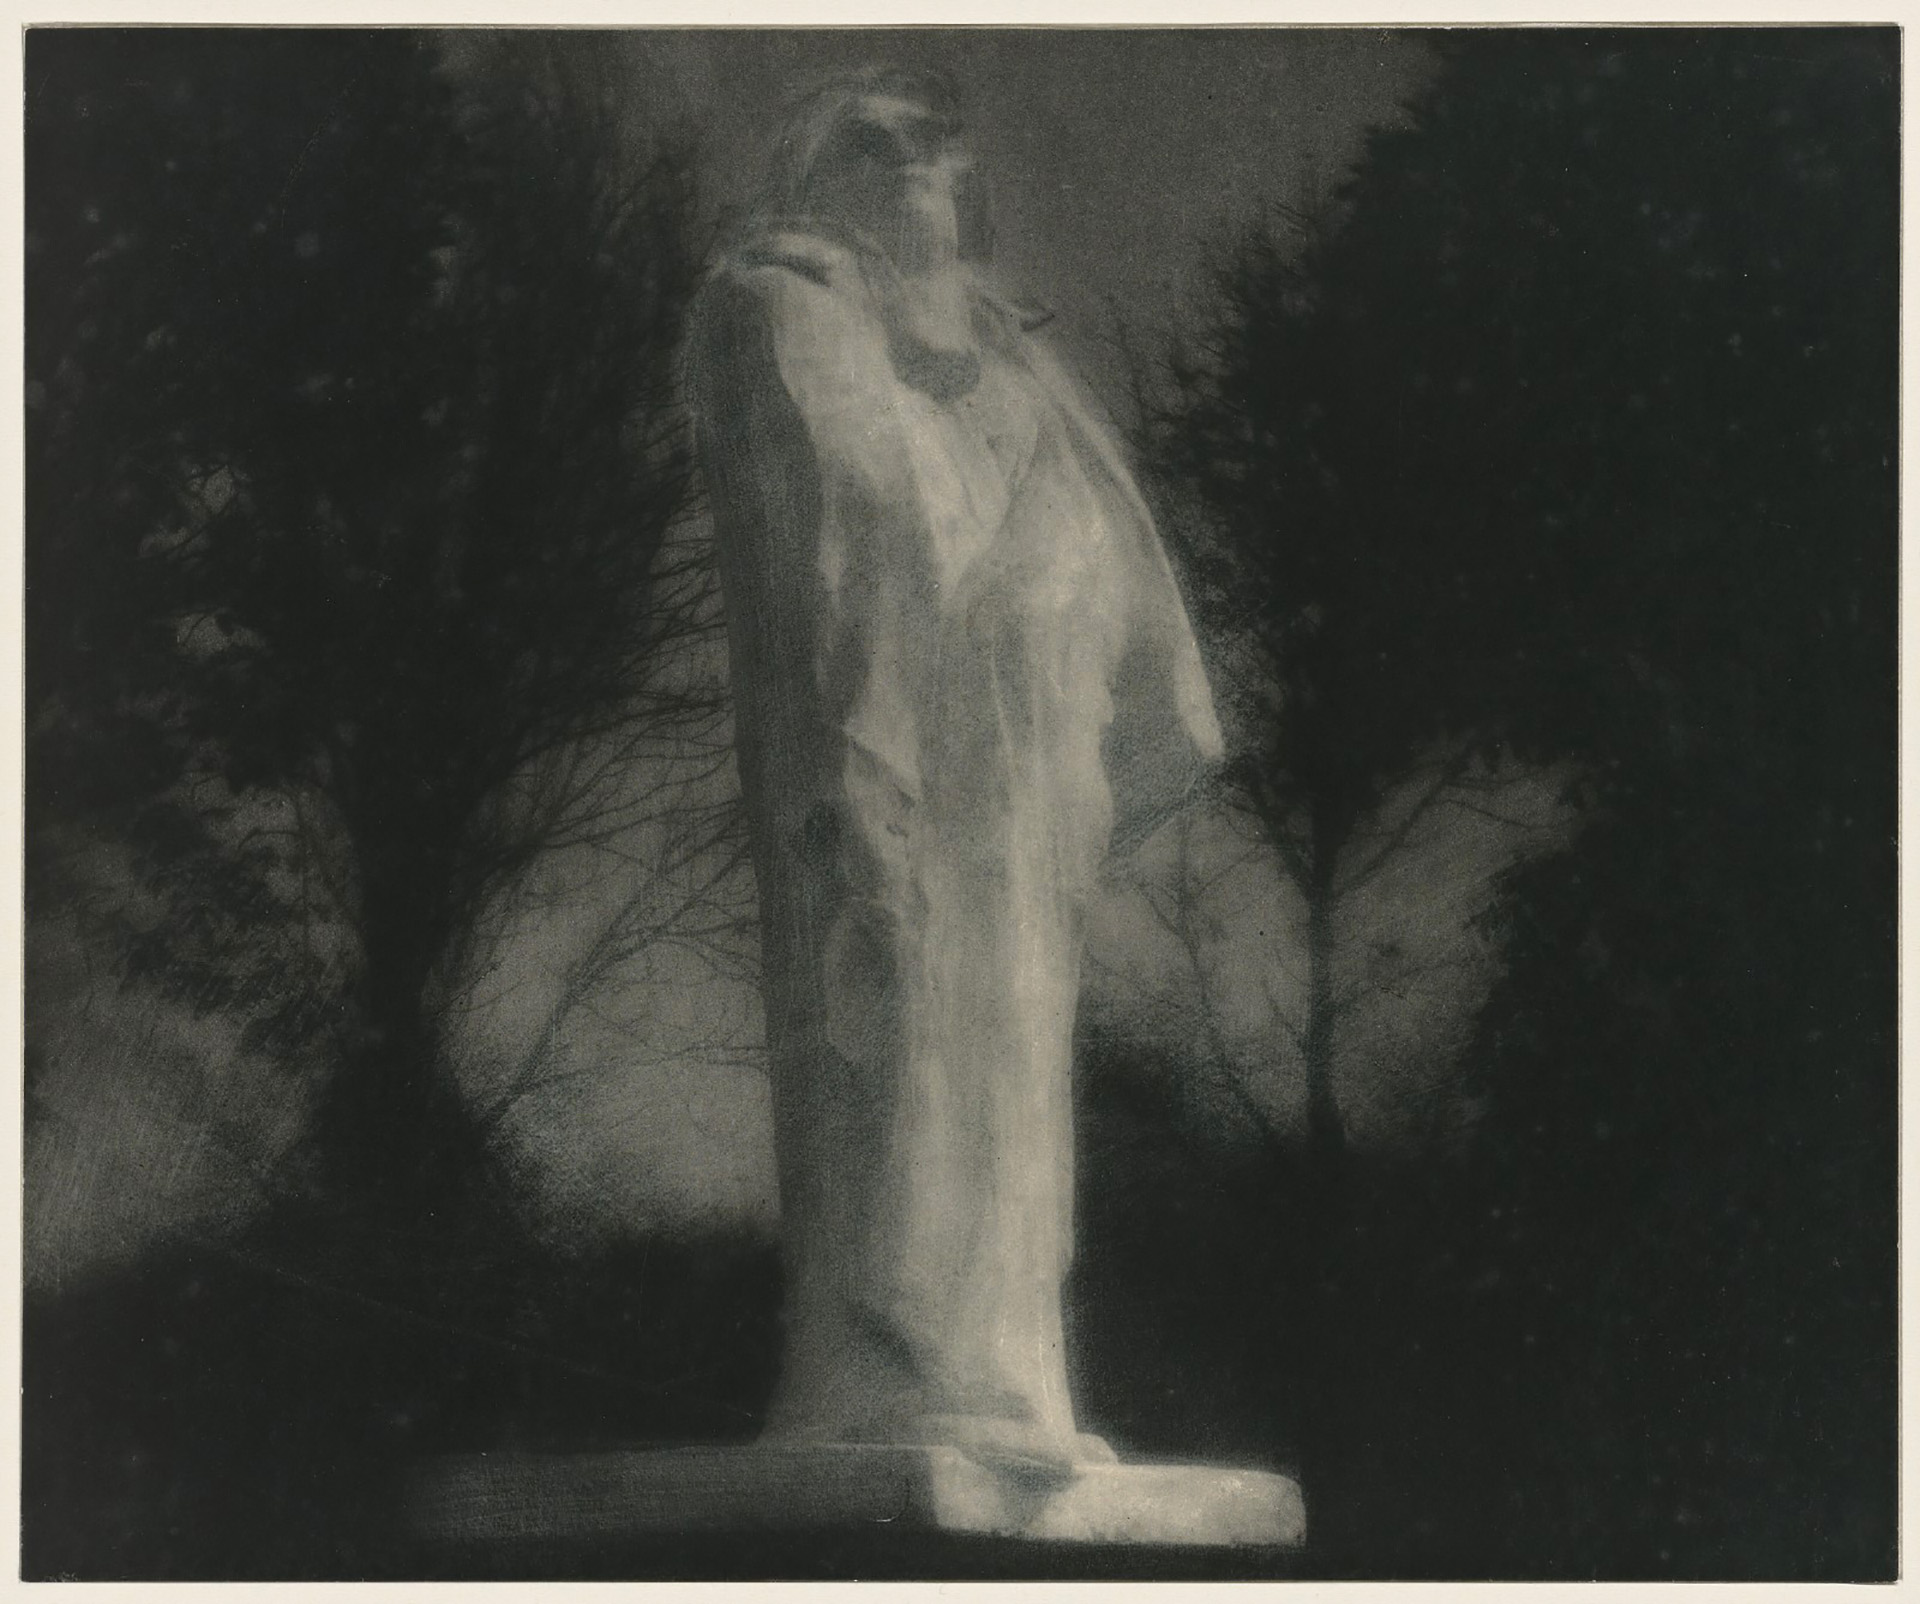 Edward Steichen, Rodin's plaster cast of his Balzac Sculpture, photographed by moonlight in 1908. Some of the earliest extant photographs made by moonlight are Steichen's series of Rodin's sculpture made in France in 1908 over a period of three nights. Steichen experimented with a range of exposures and lighting, resulting in a series of images that are now considered among his most important works.